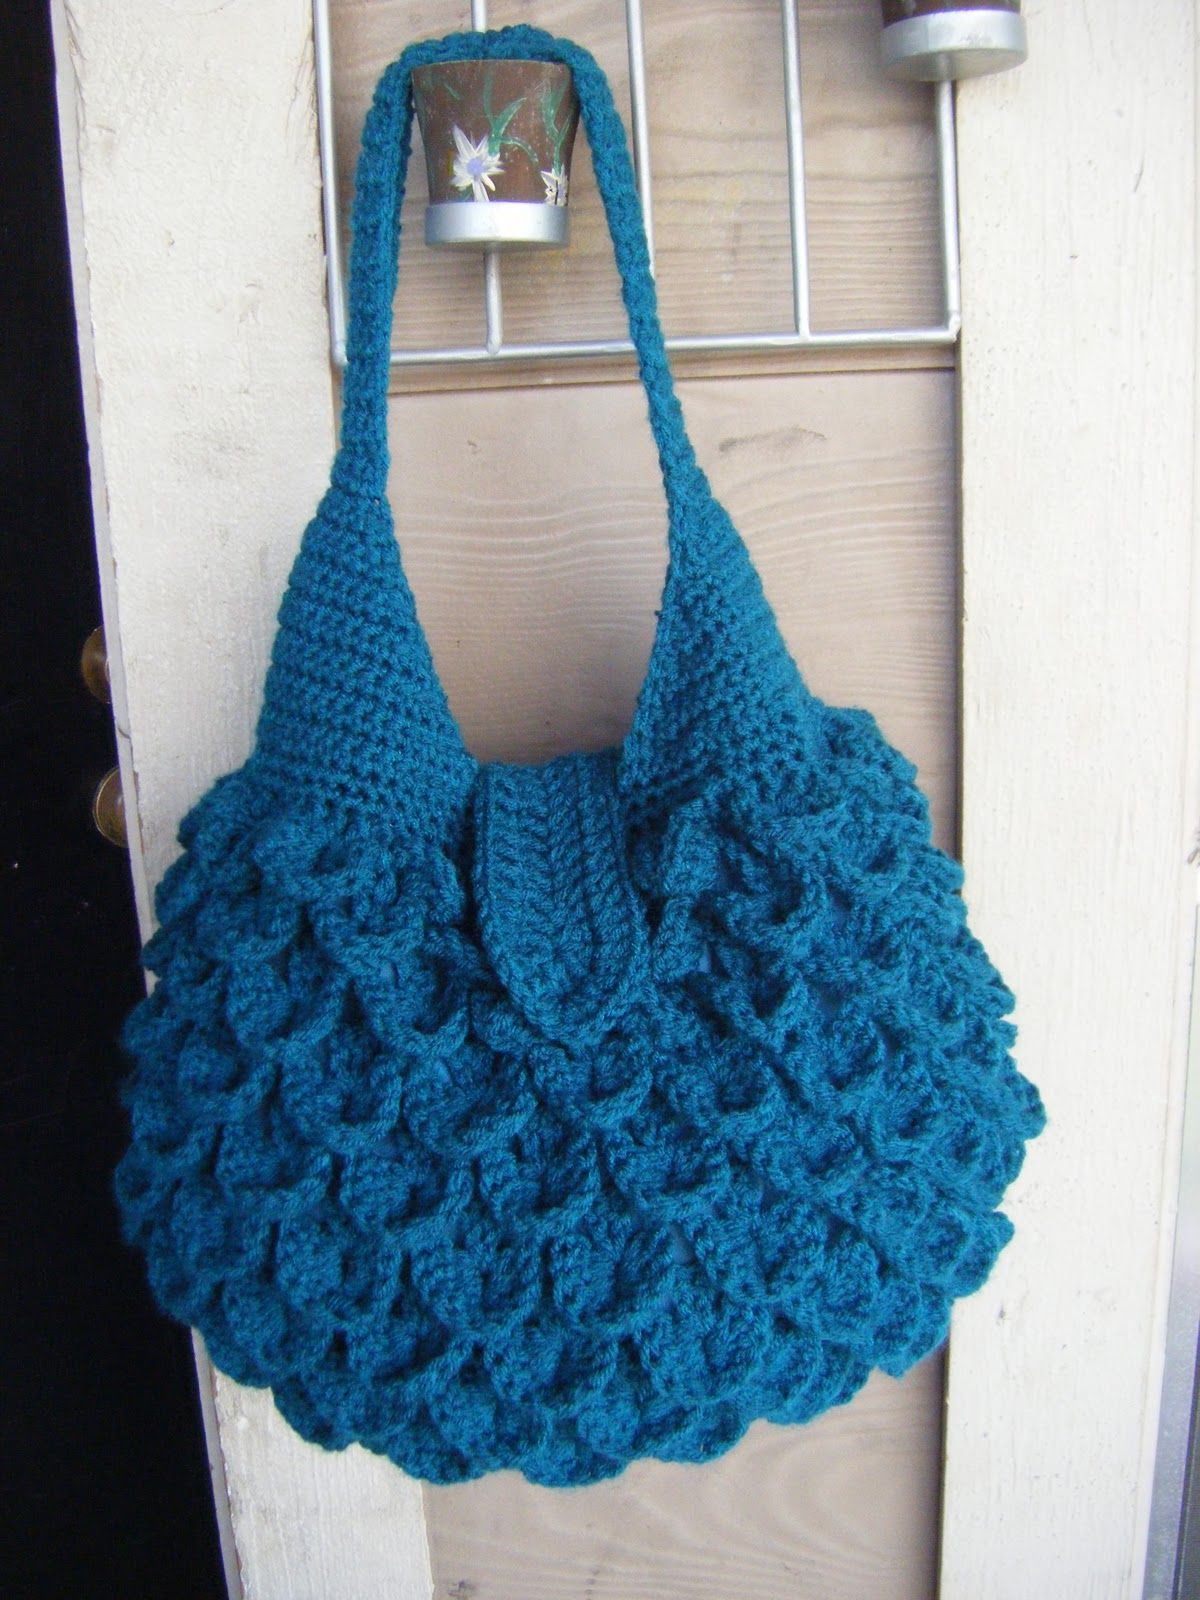 Free+Crochet+Purse+Patterns+Totes | Crochet Pattern Central – Free ...